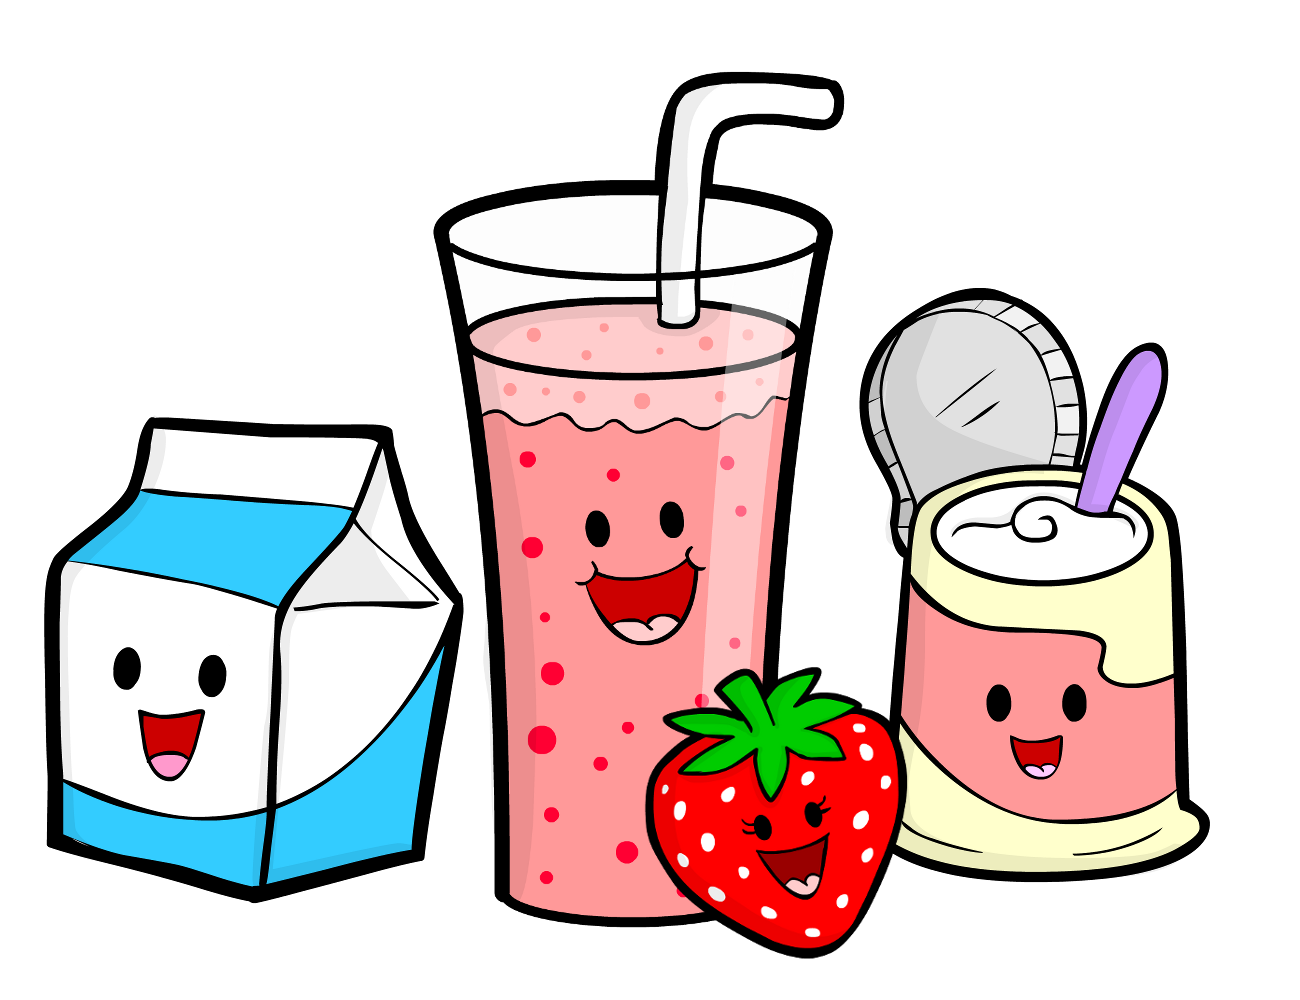 svg Cartoon cooking smoothie recipe. Cookbook clipart clothes